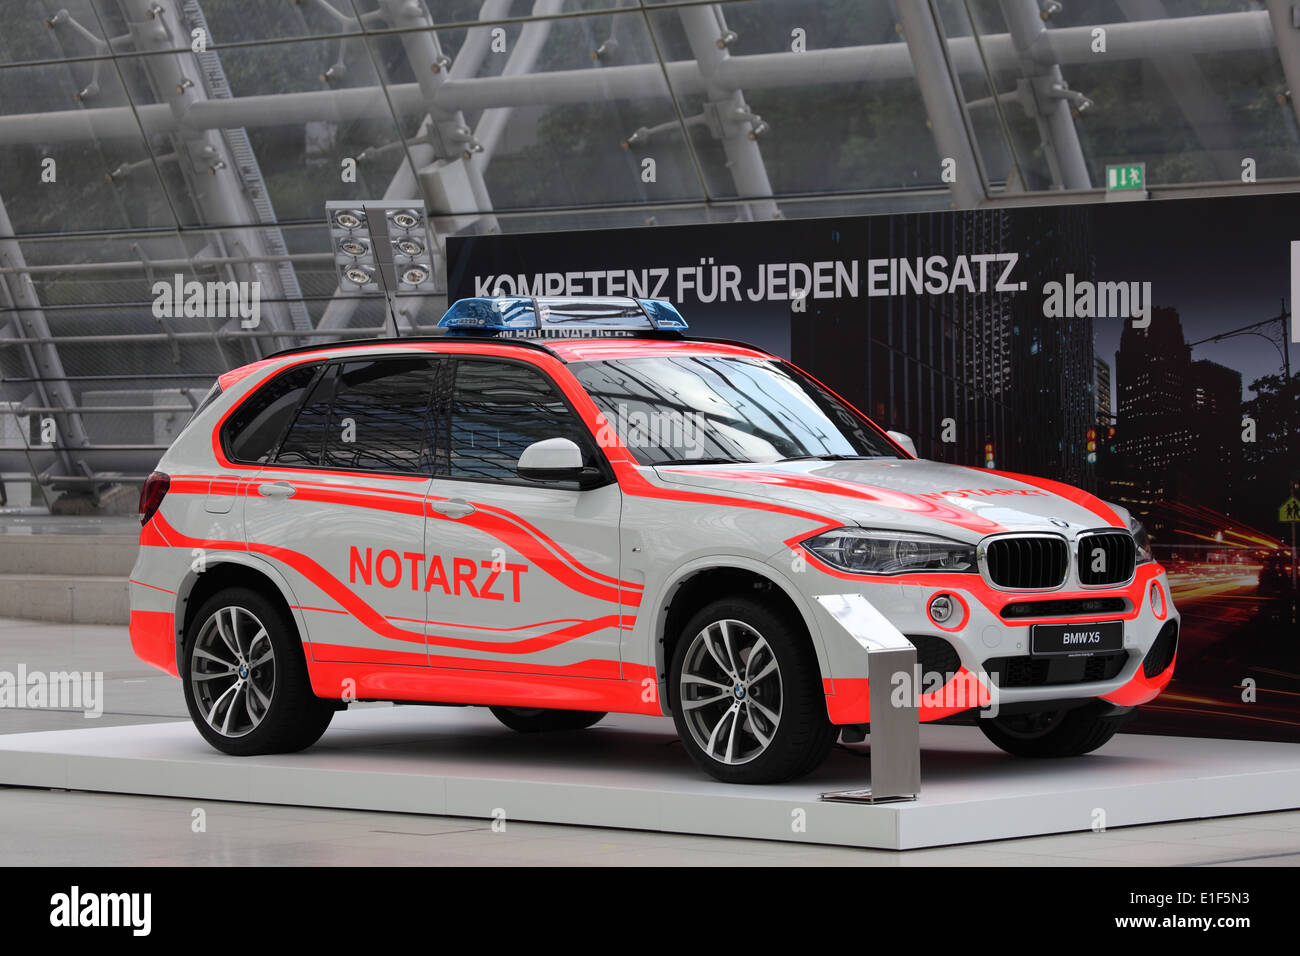 BMW X5 Notarzt (emergency doctor) at the AMI - Auto Mobile International Trade Fair on June 1st, 2014 in Leipzig, Saxony, German - Stock Image